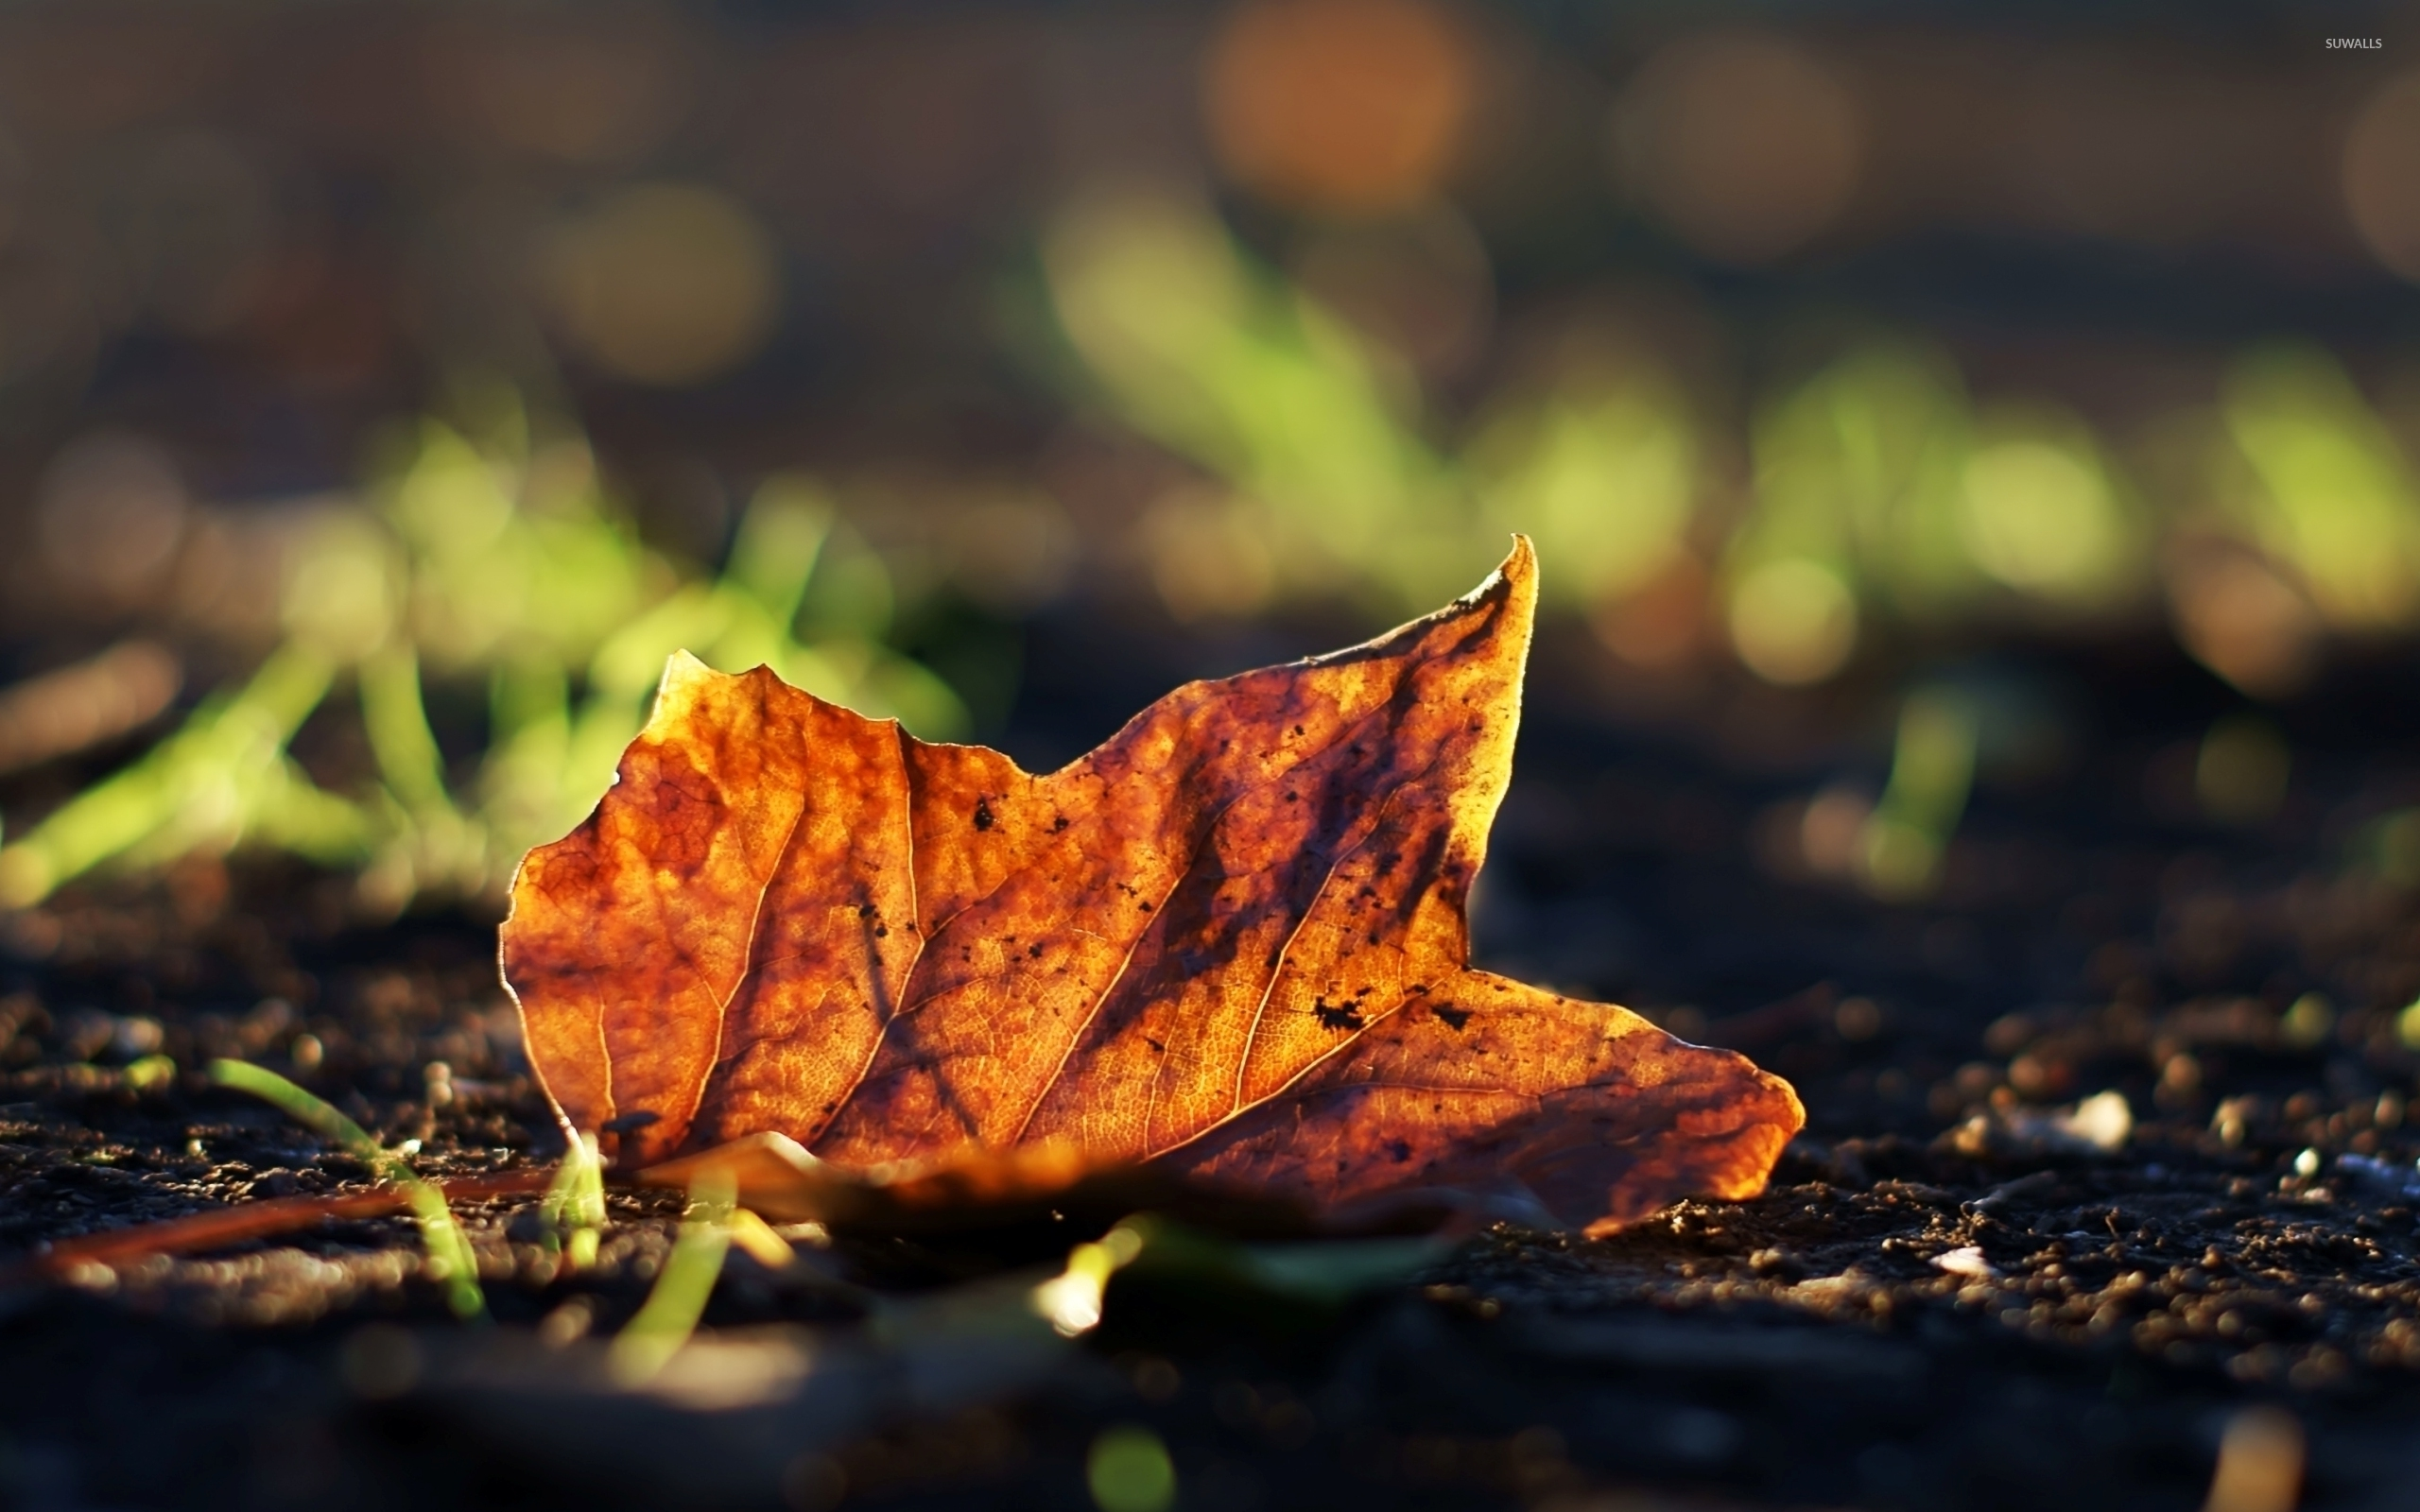 Fall Wallpaper Ocean Autumn Leaf On The Ground Wallpaper Photography